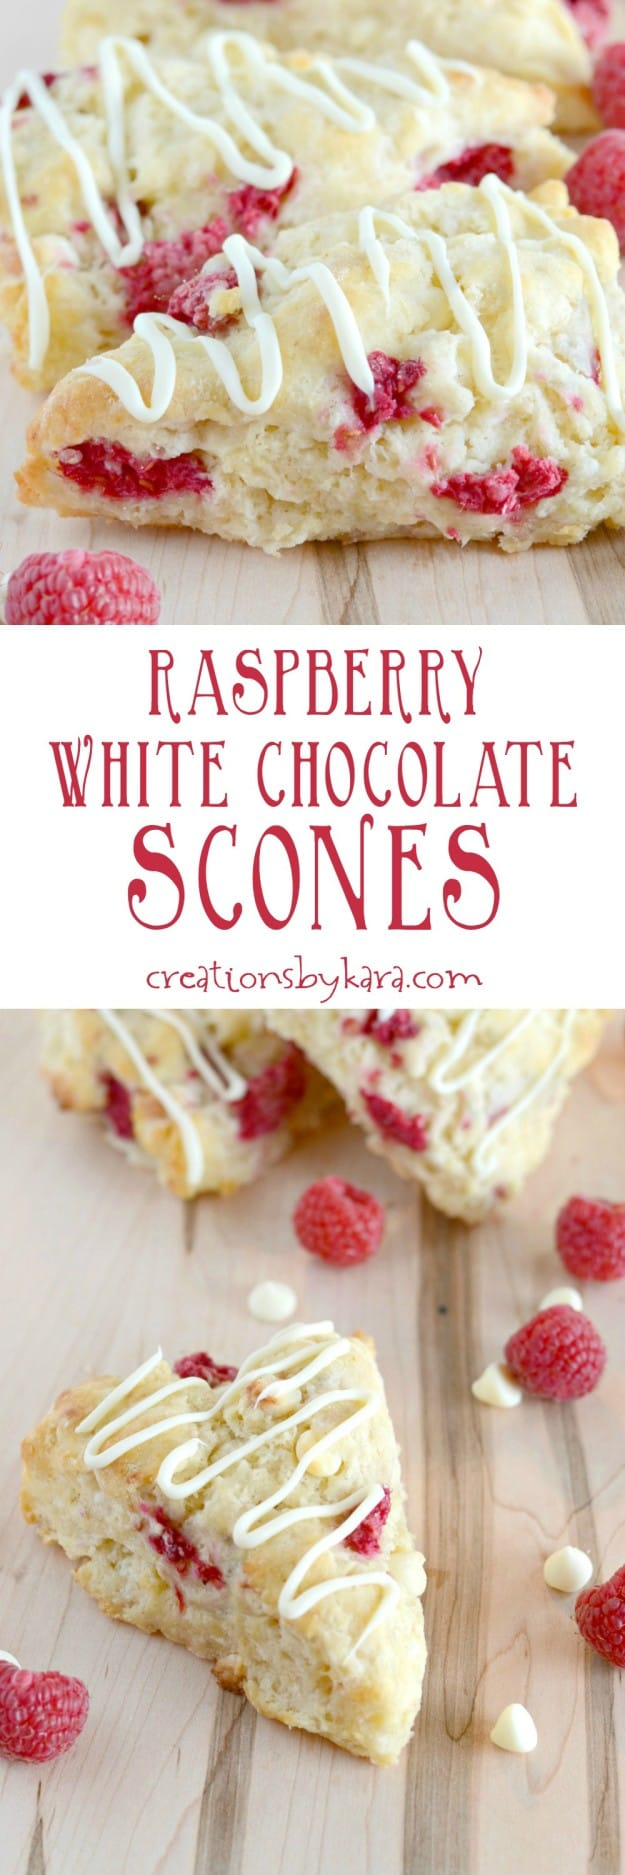 raspberry white chocolate scones recipe collage